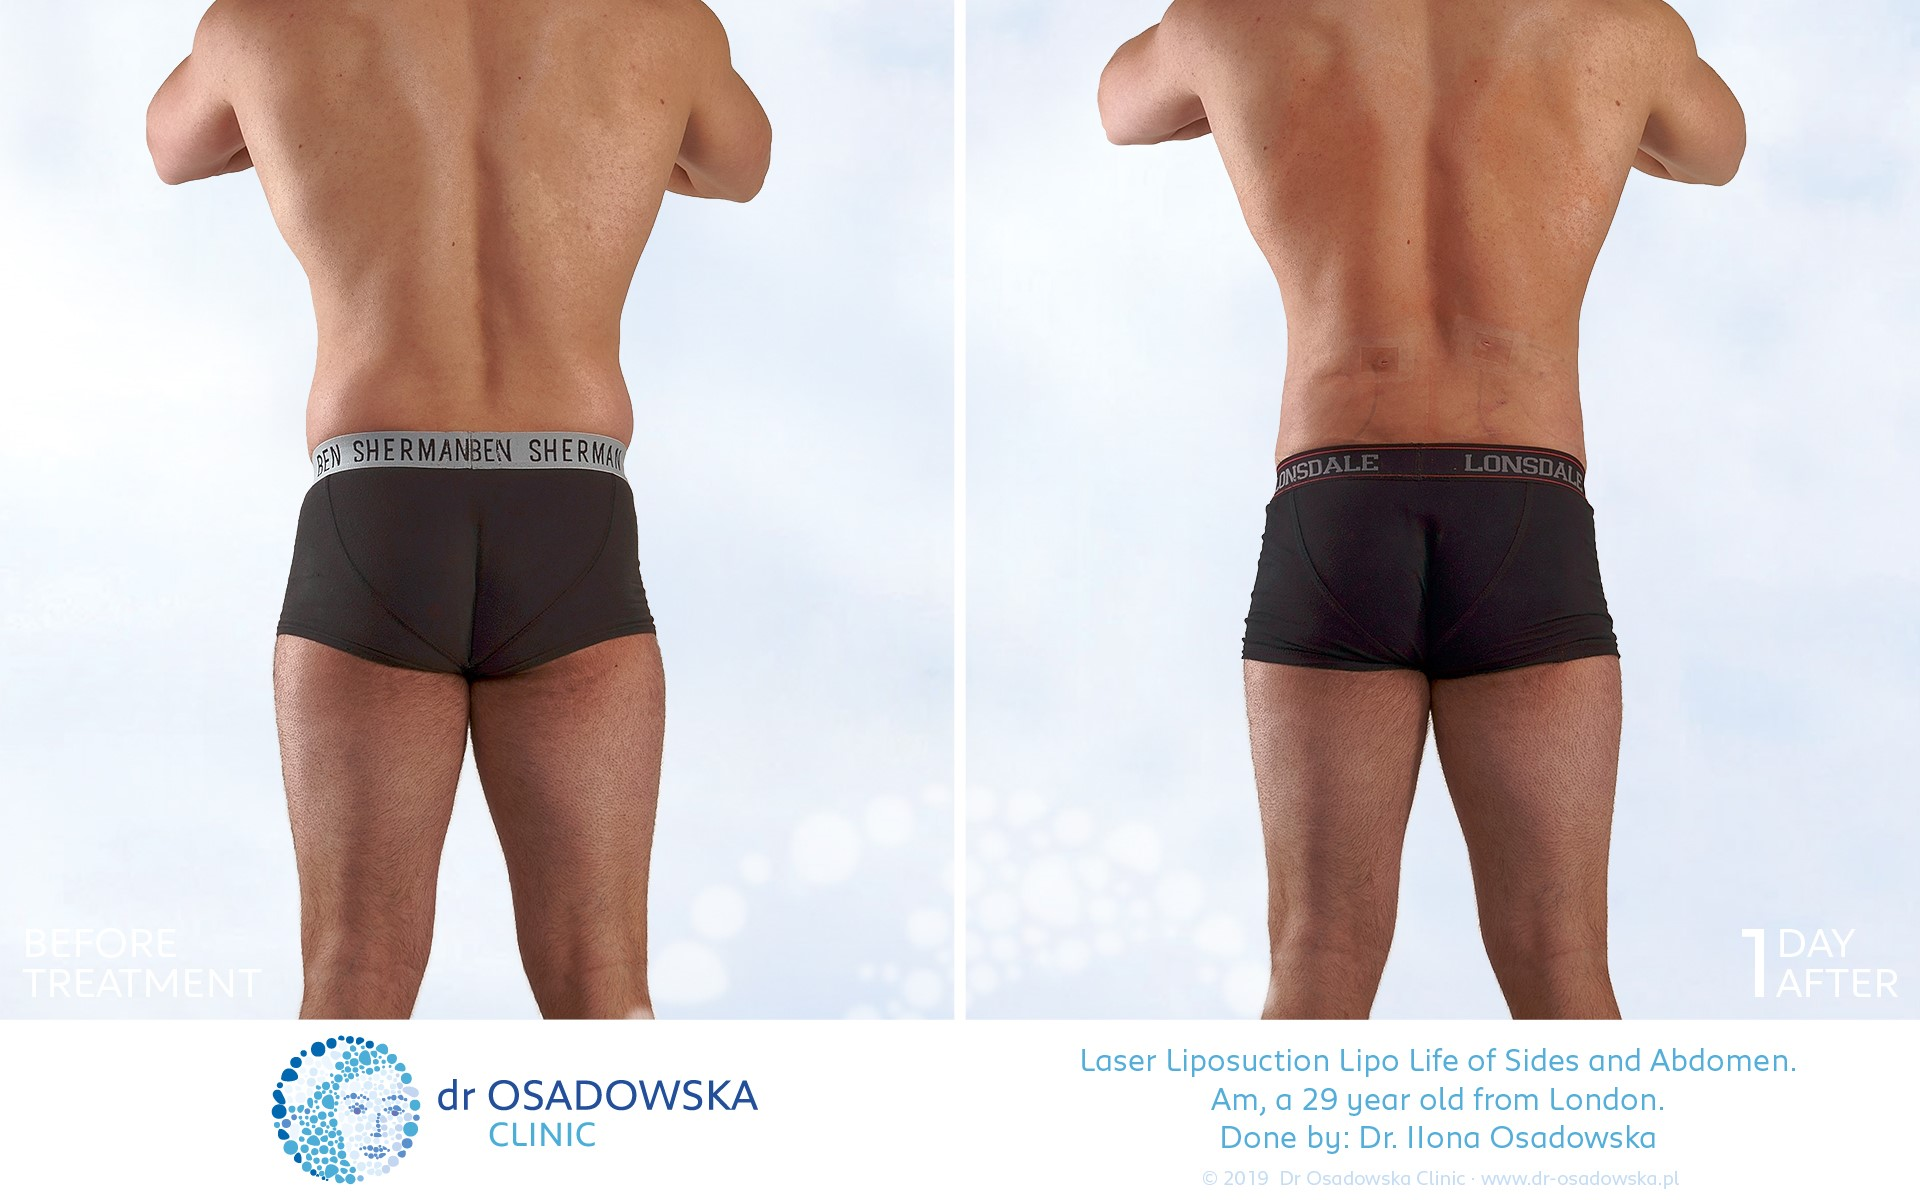 Liposuction abdomen flanks, LipoLife, before after, 3 months, back view